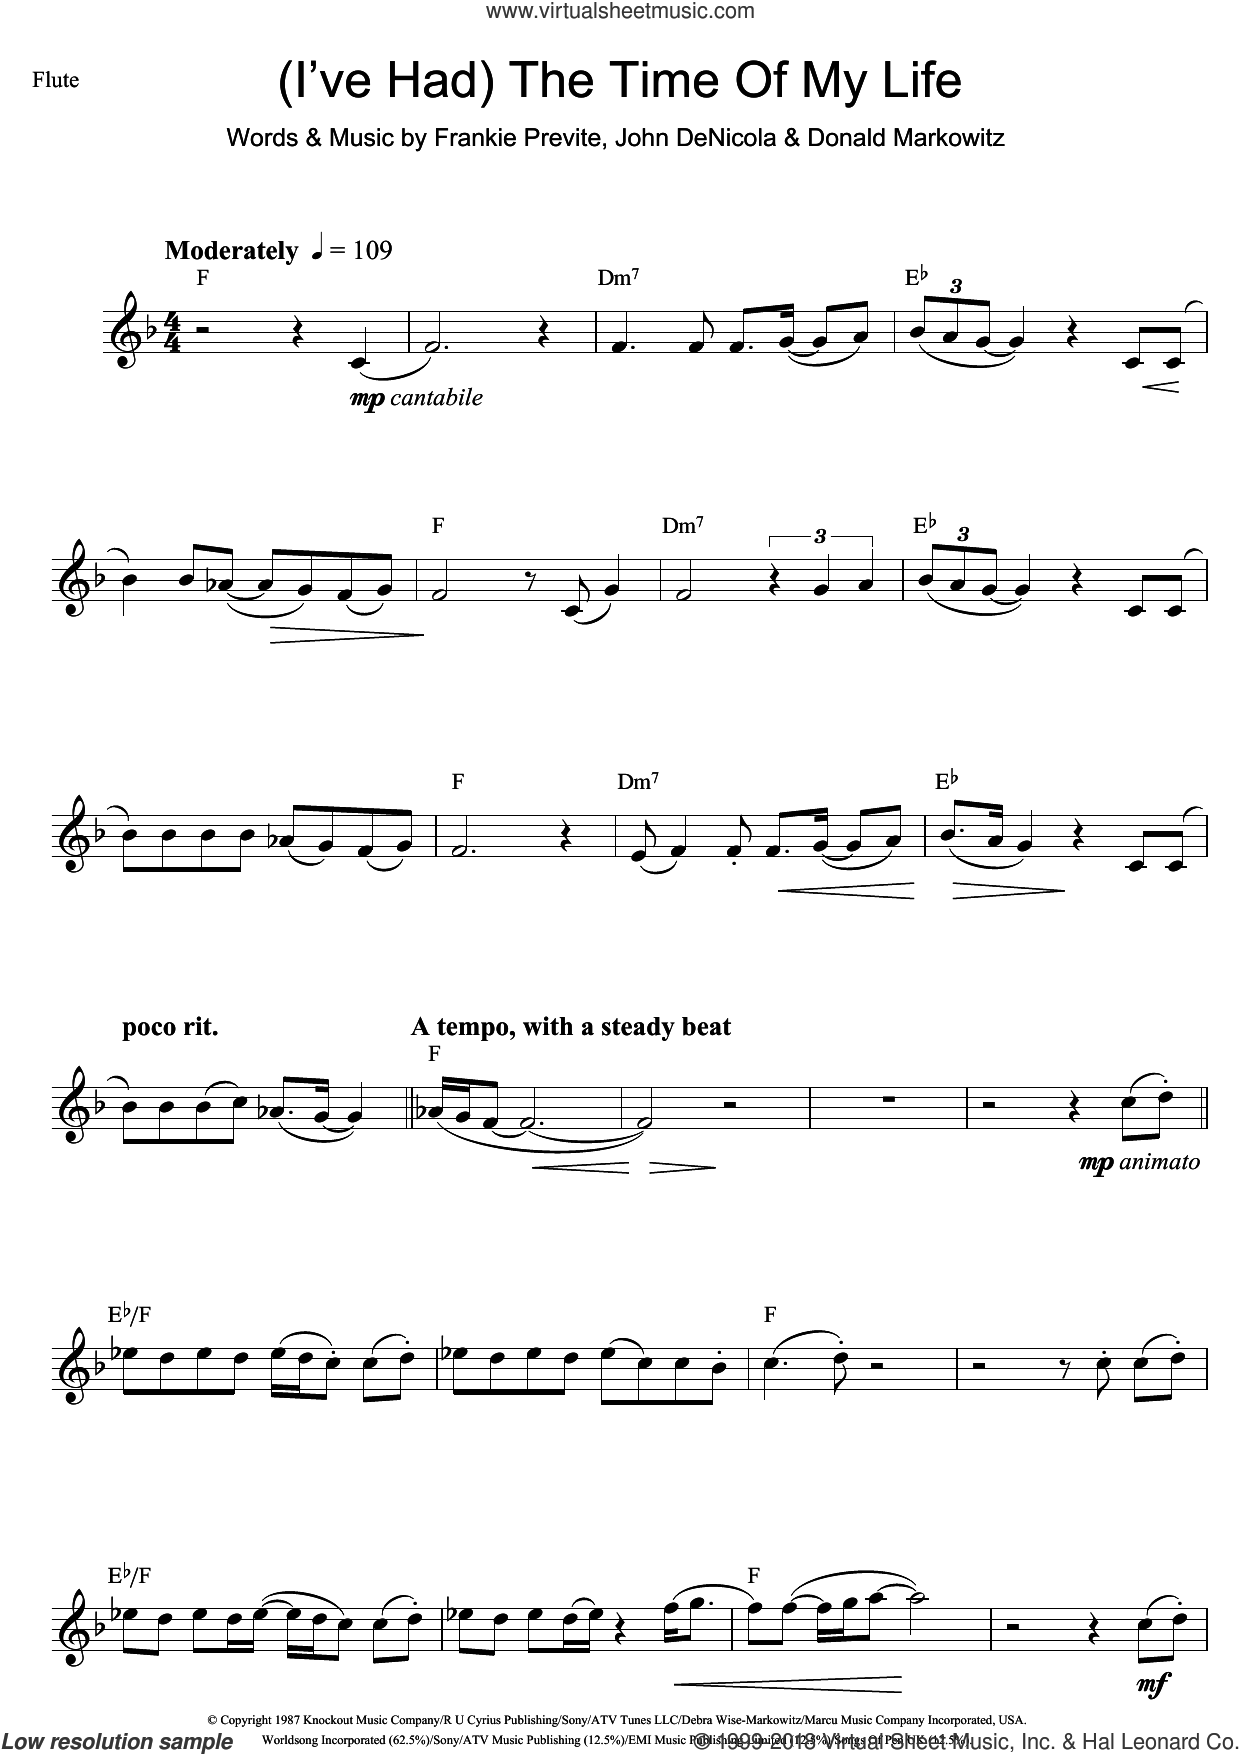 (I've Had) The Time Of My Life sheet music for flute solo by Bill Medley, Jennifer Warnes, Donald Markowitz, Frankie Previte and John DeNicola, intermediate skill level